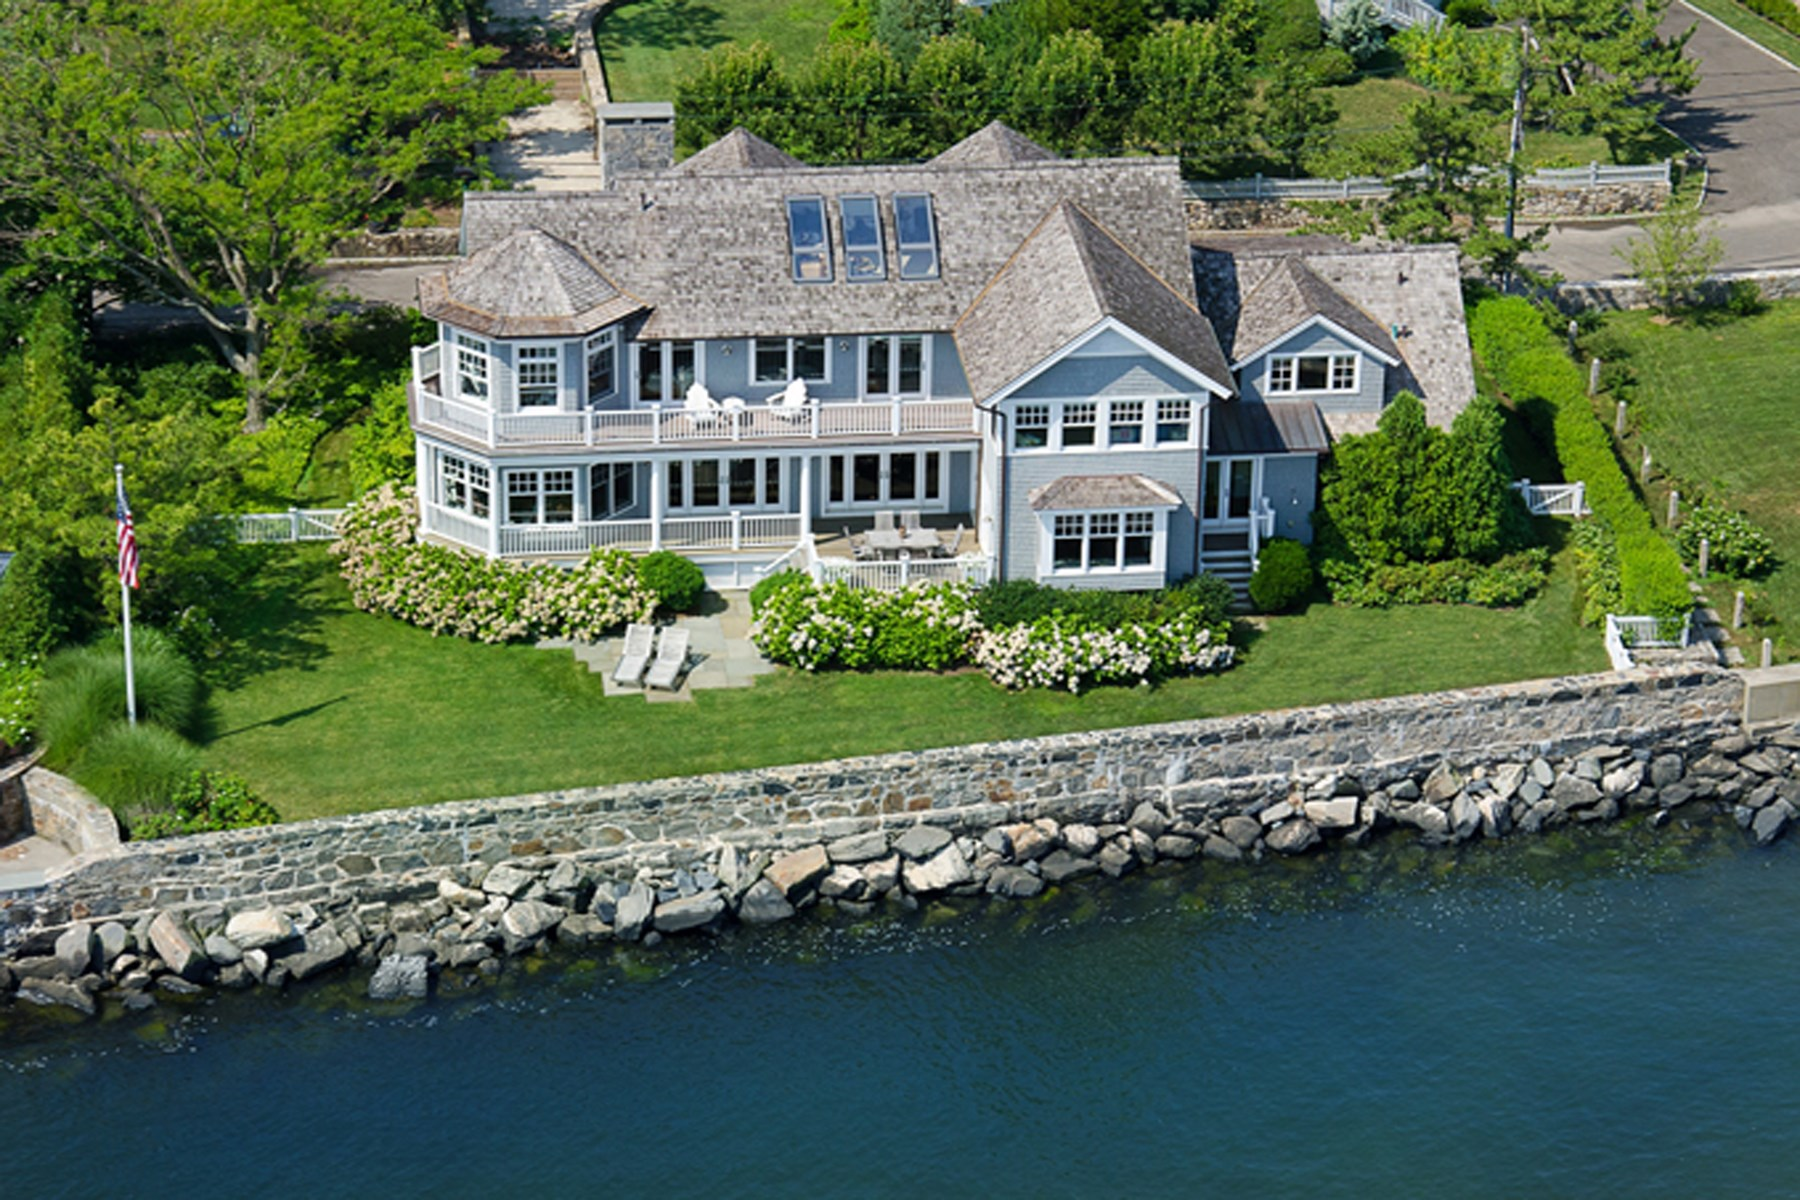 Single Family Home for Sale at Spectacular Waterfront in Old Greenwich 15 East Point Lane Old Greenwich, Connecticut 06870 United States